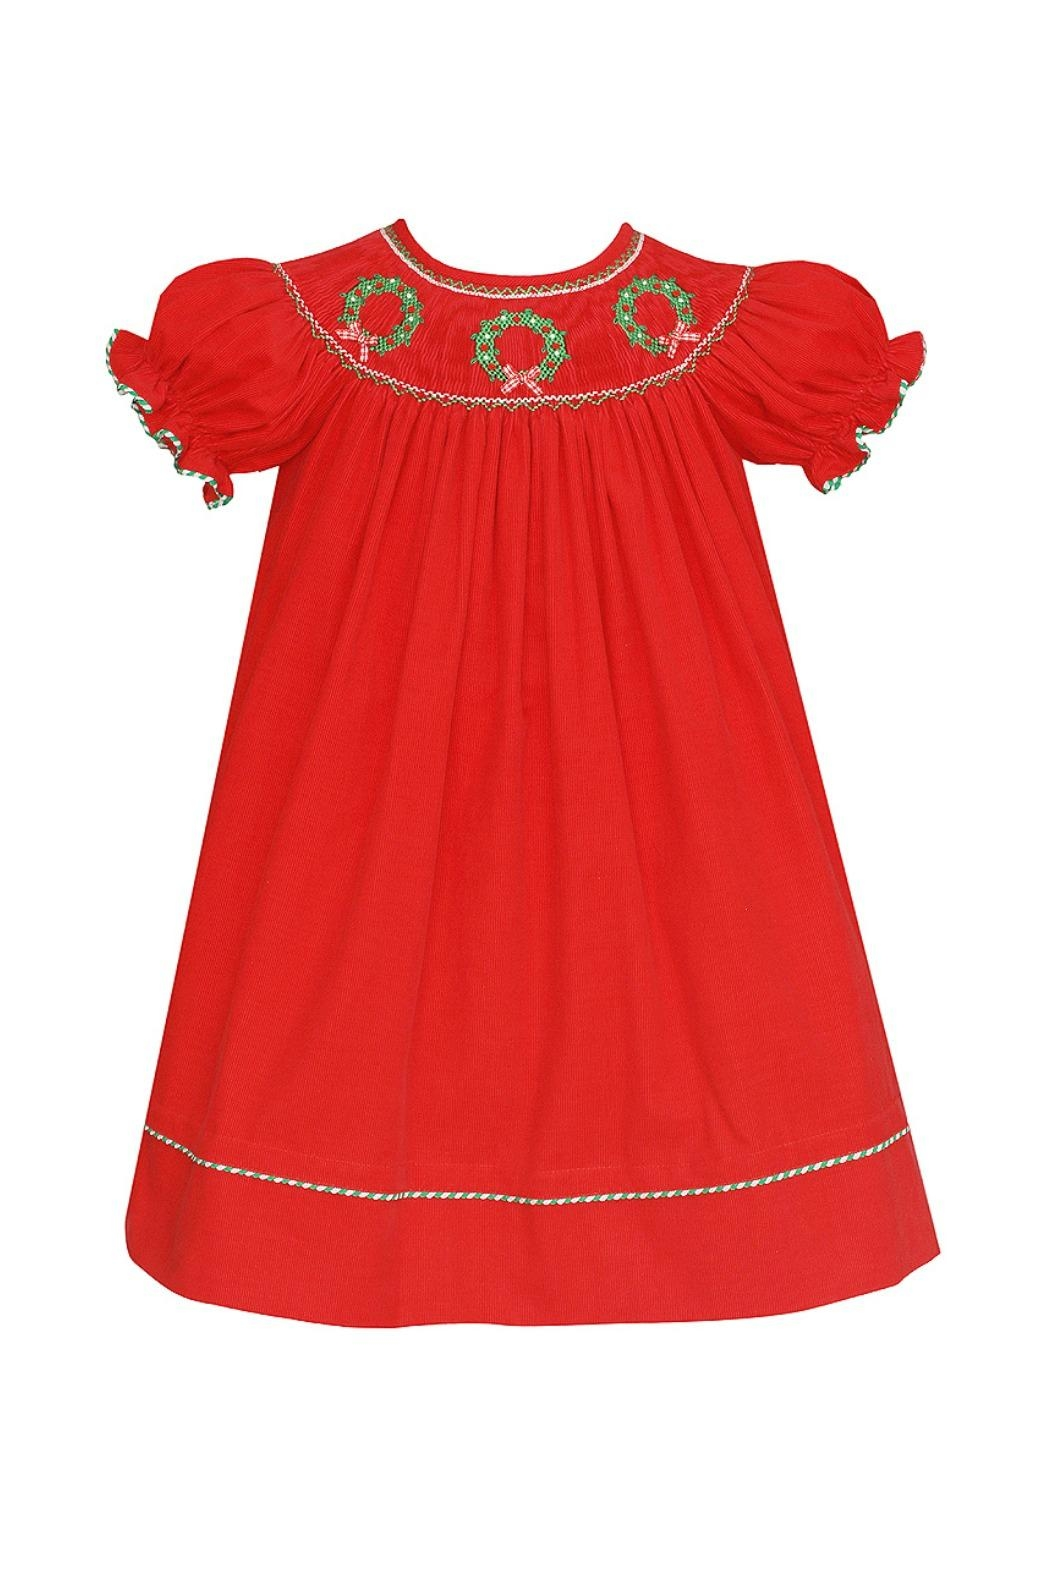 ANAVINI Red-Corduroy-Smocked-Christmas-Wreath-Bishop - Main Image